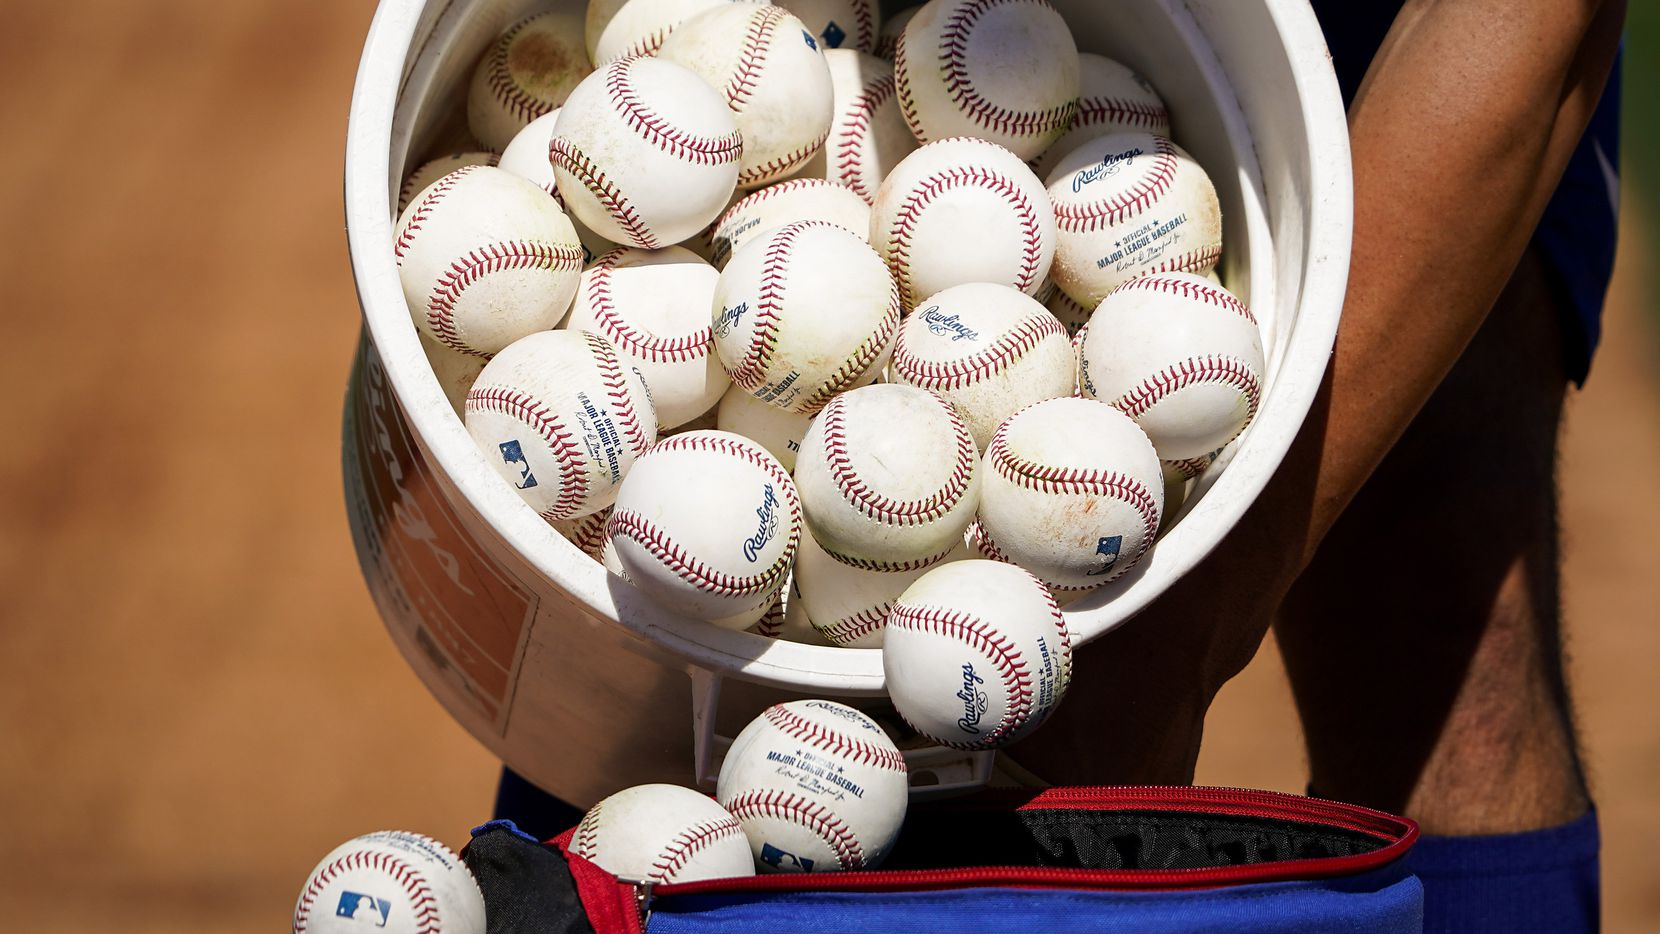 A bucket of baseballs from infield practice during a spring training workout at the Rangers' training facility on Thursday, Feb. 13, 2020, in Surprise, Ariz.